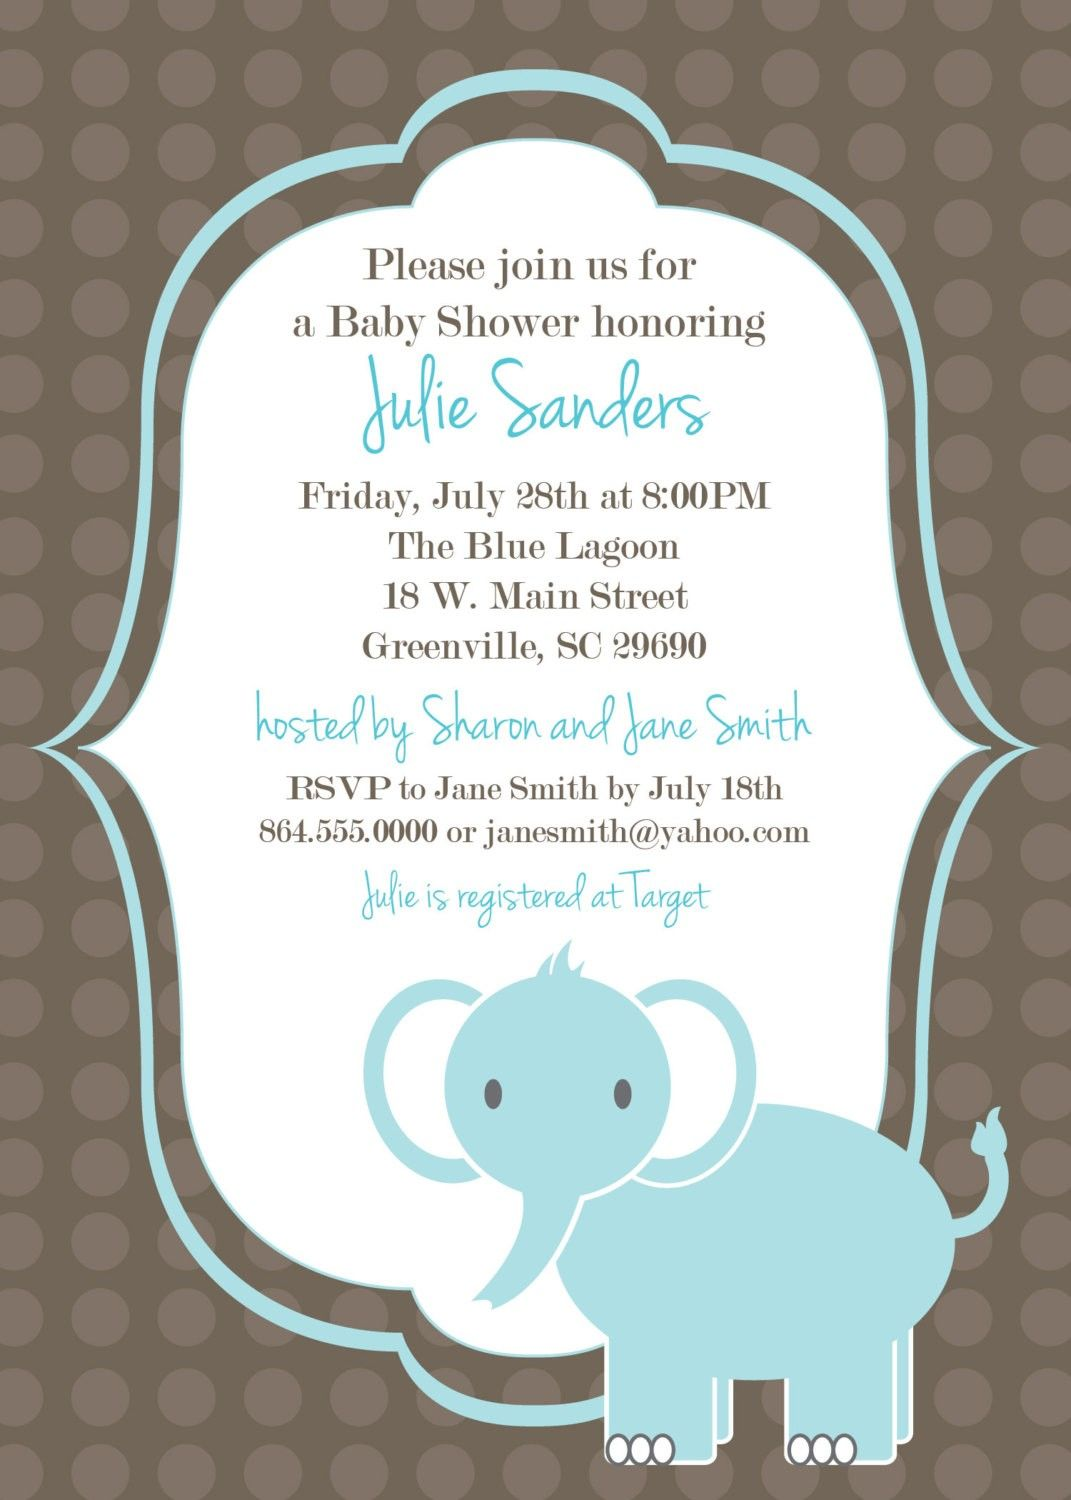 Download Free Template Got The Free Baby Shower Invitations Create Baby Shower Invitations Free Baby Shower Invitations Baby Shower Invitations For Boys